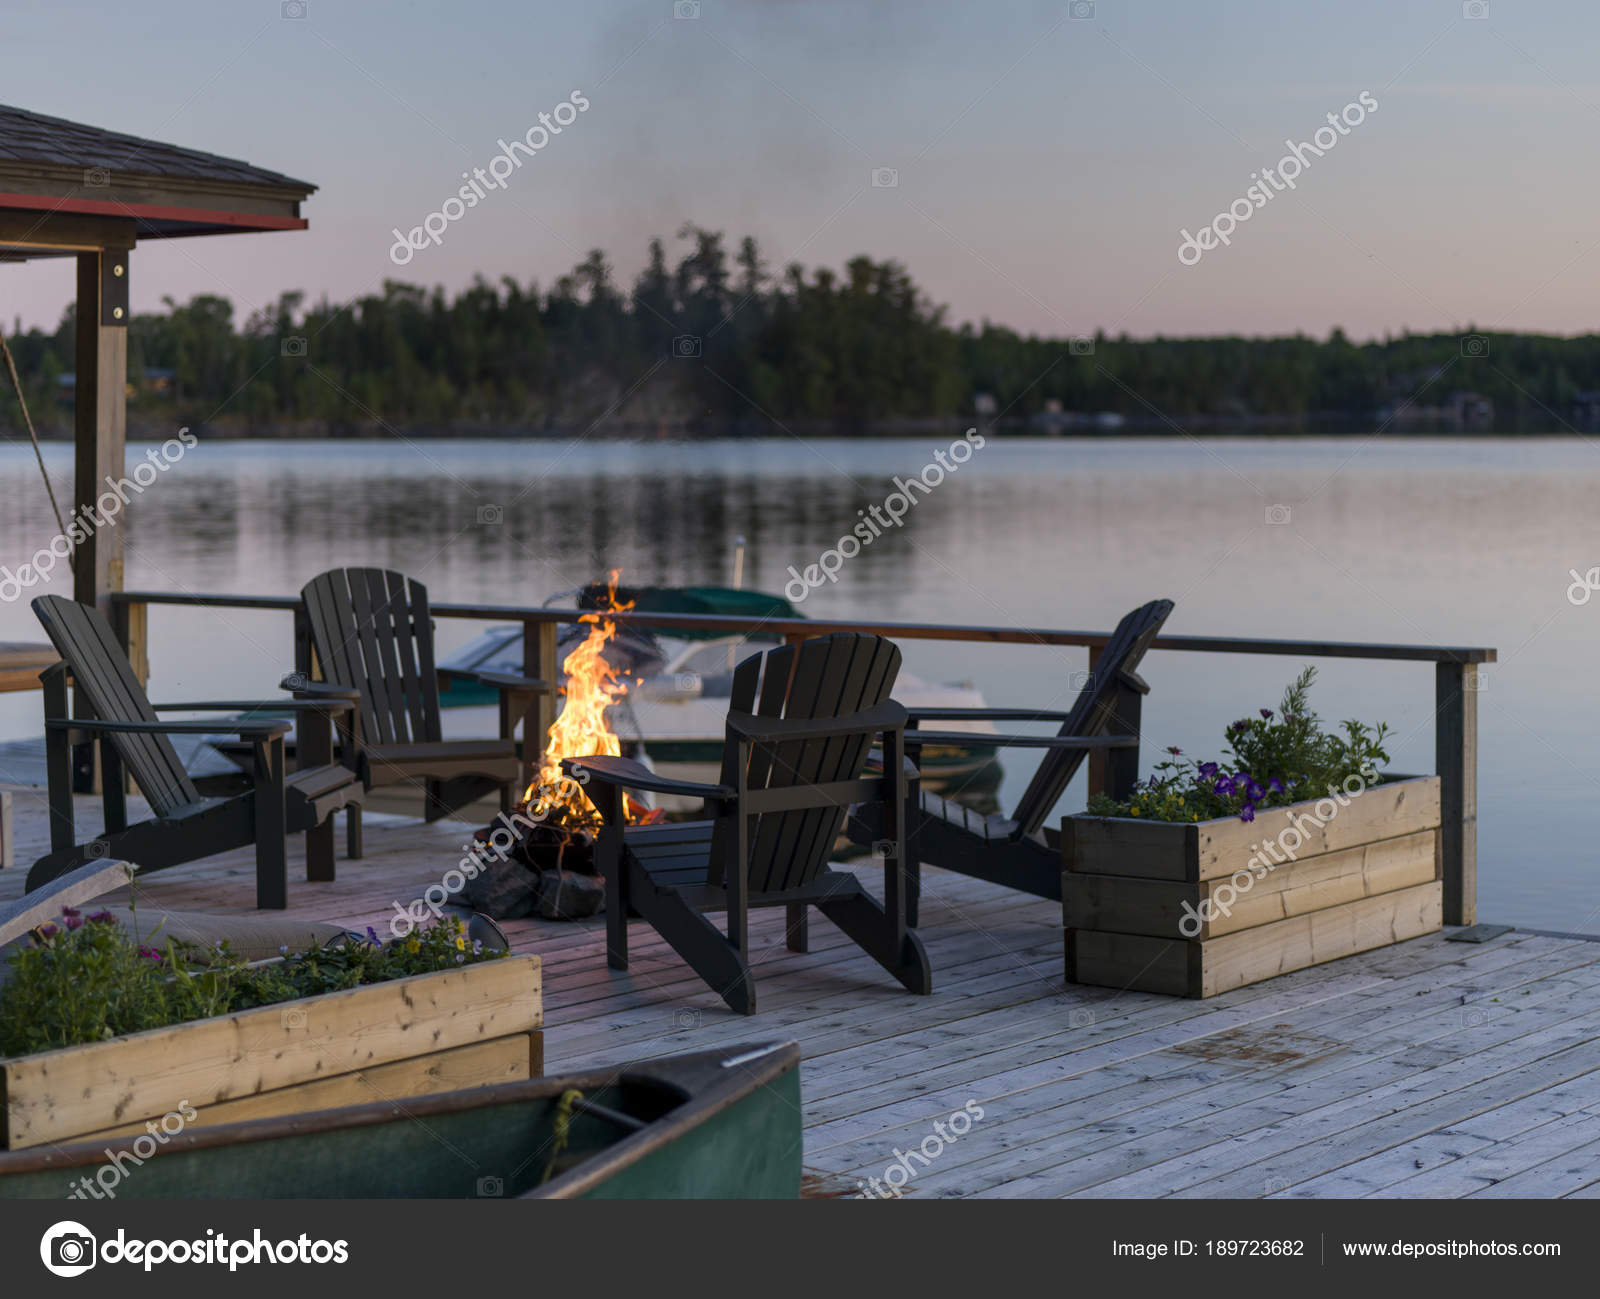 Adirondack Chairs And Campfire On A Dock, Lake Of The Woods, Ontario,  Canada U2014 Photo By Klevit.shaw.ca